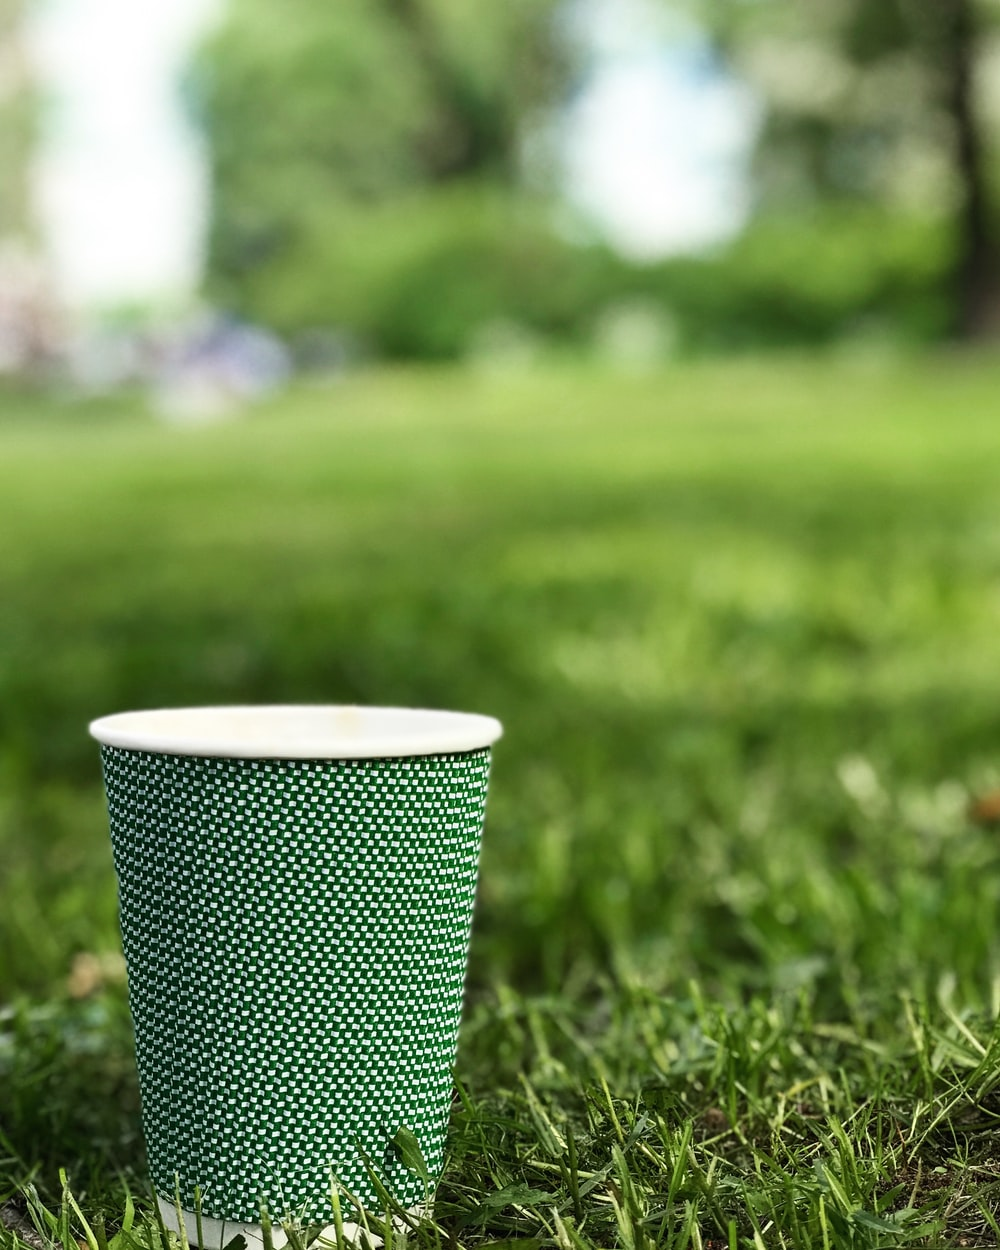 green and white solo cup on grass field